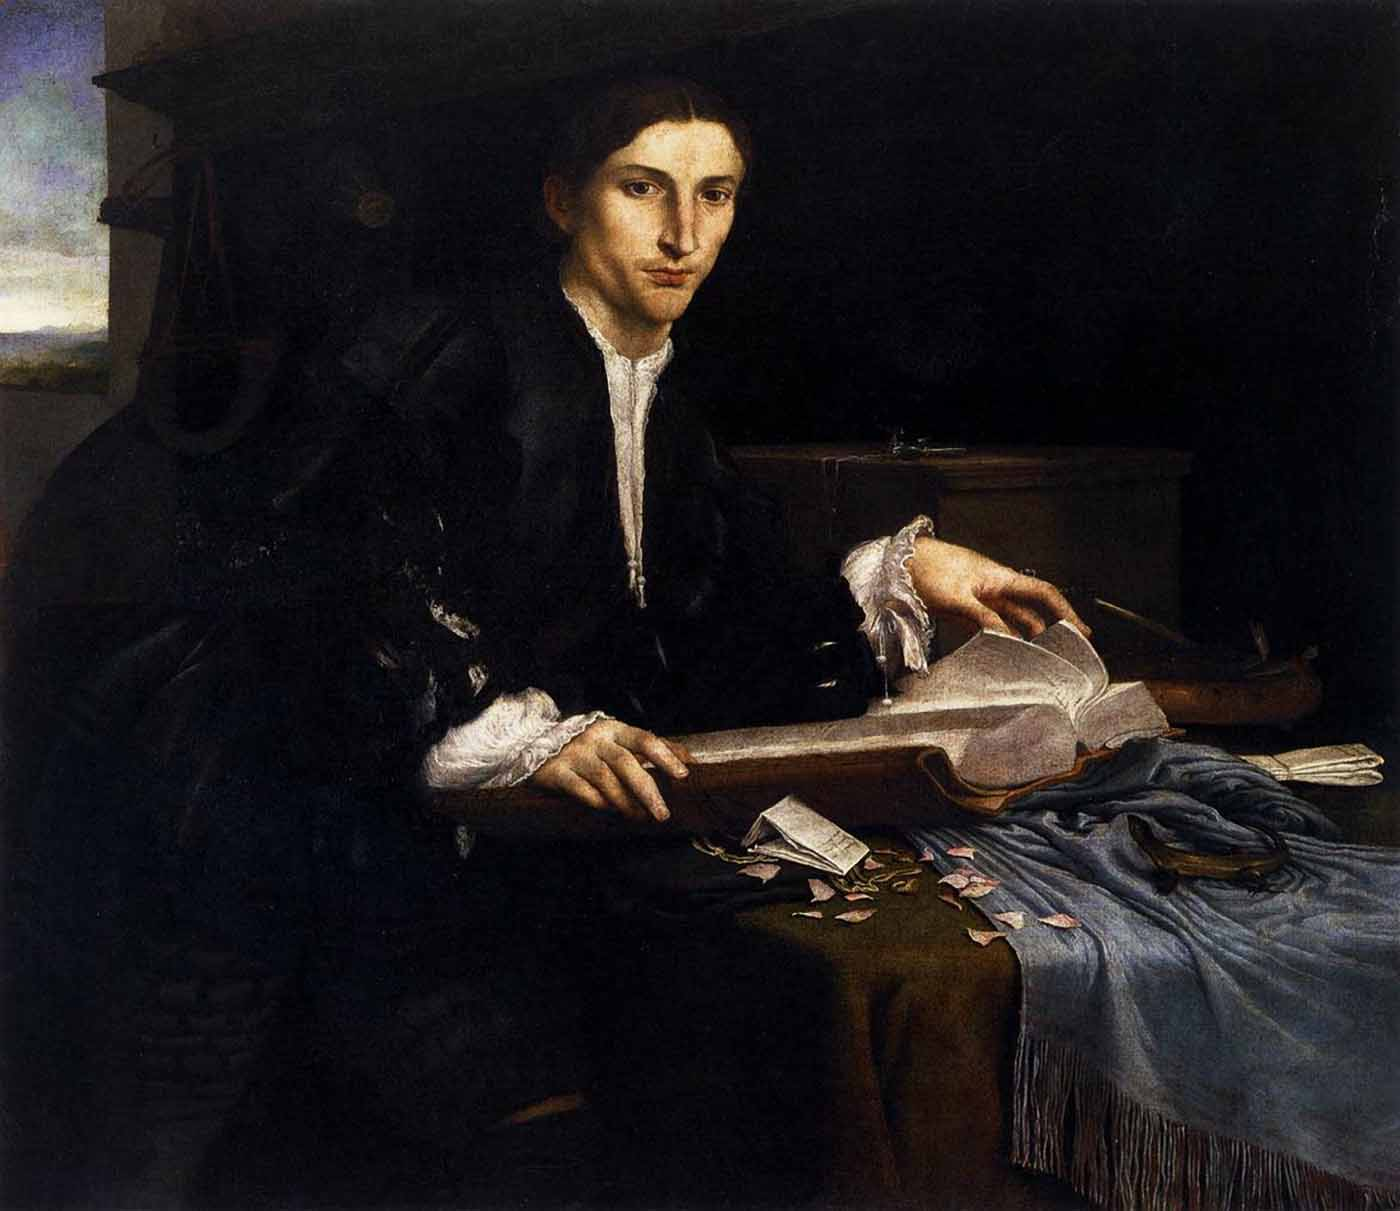 Lorenzo Lotto Portrait of a Young Man in his Study c. 1530-2